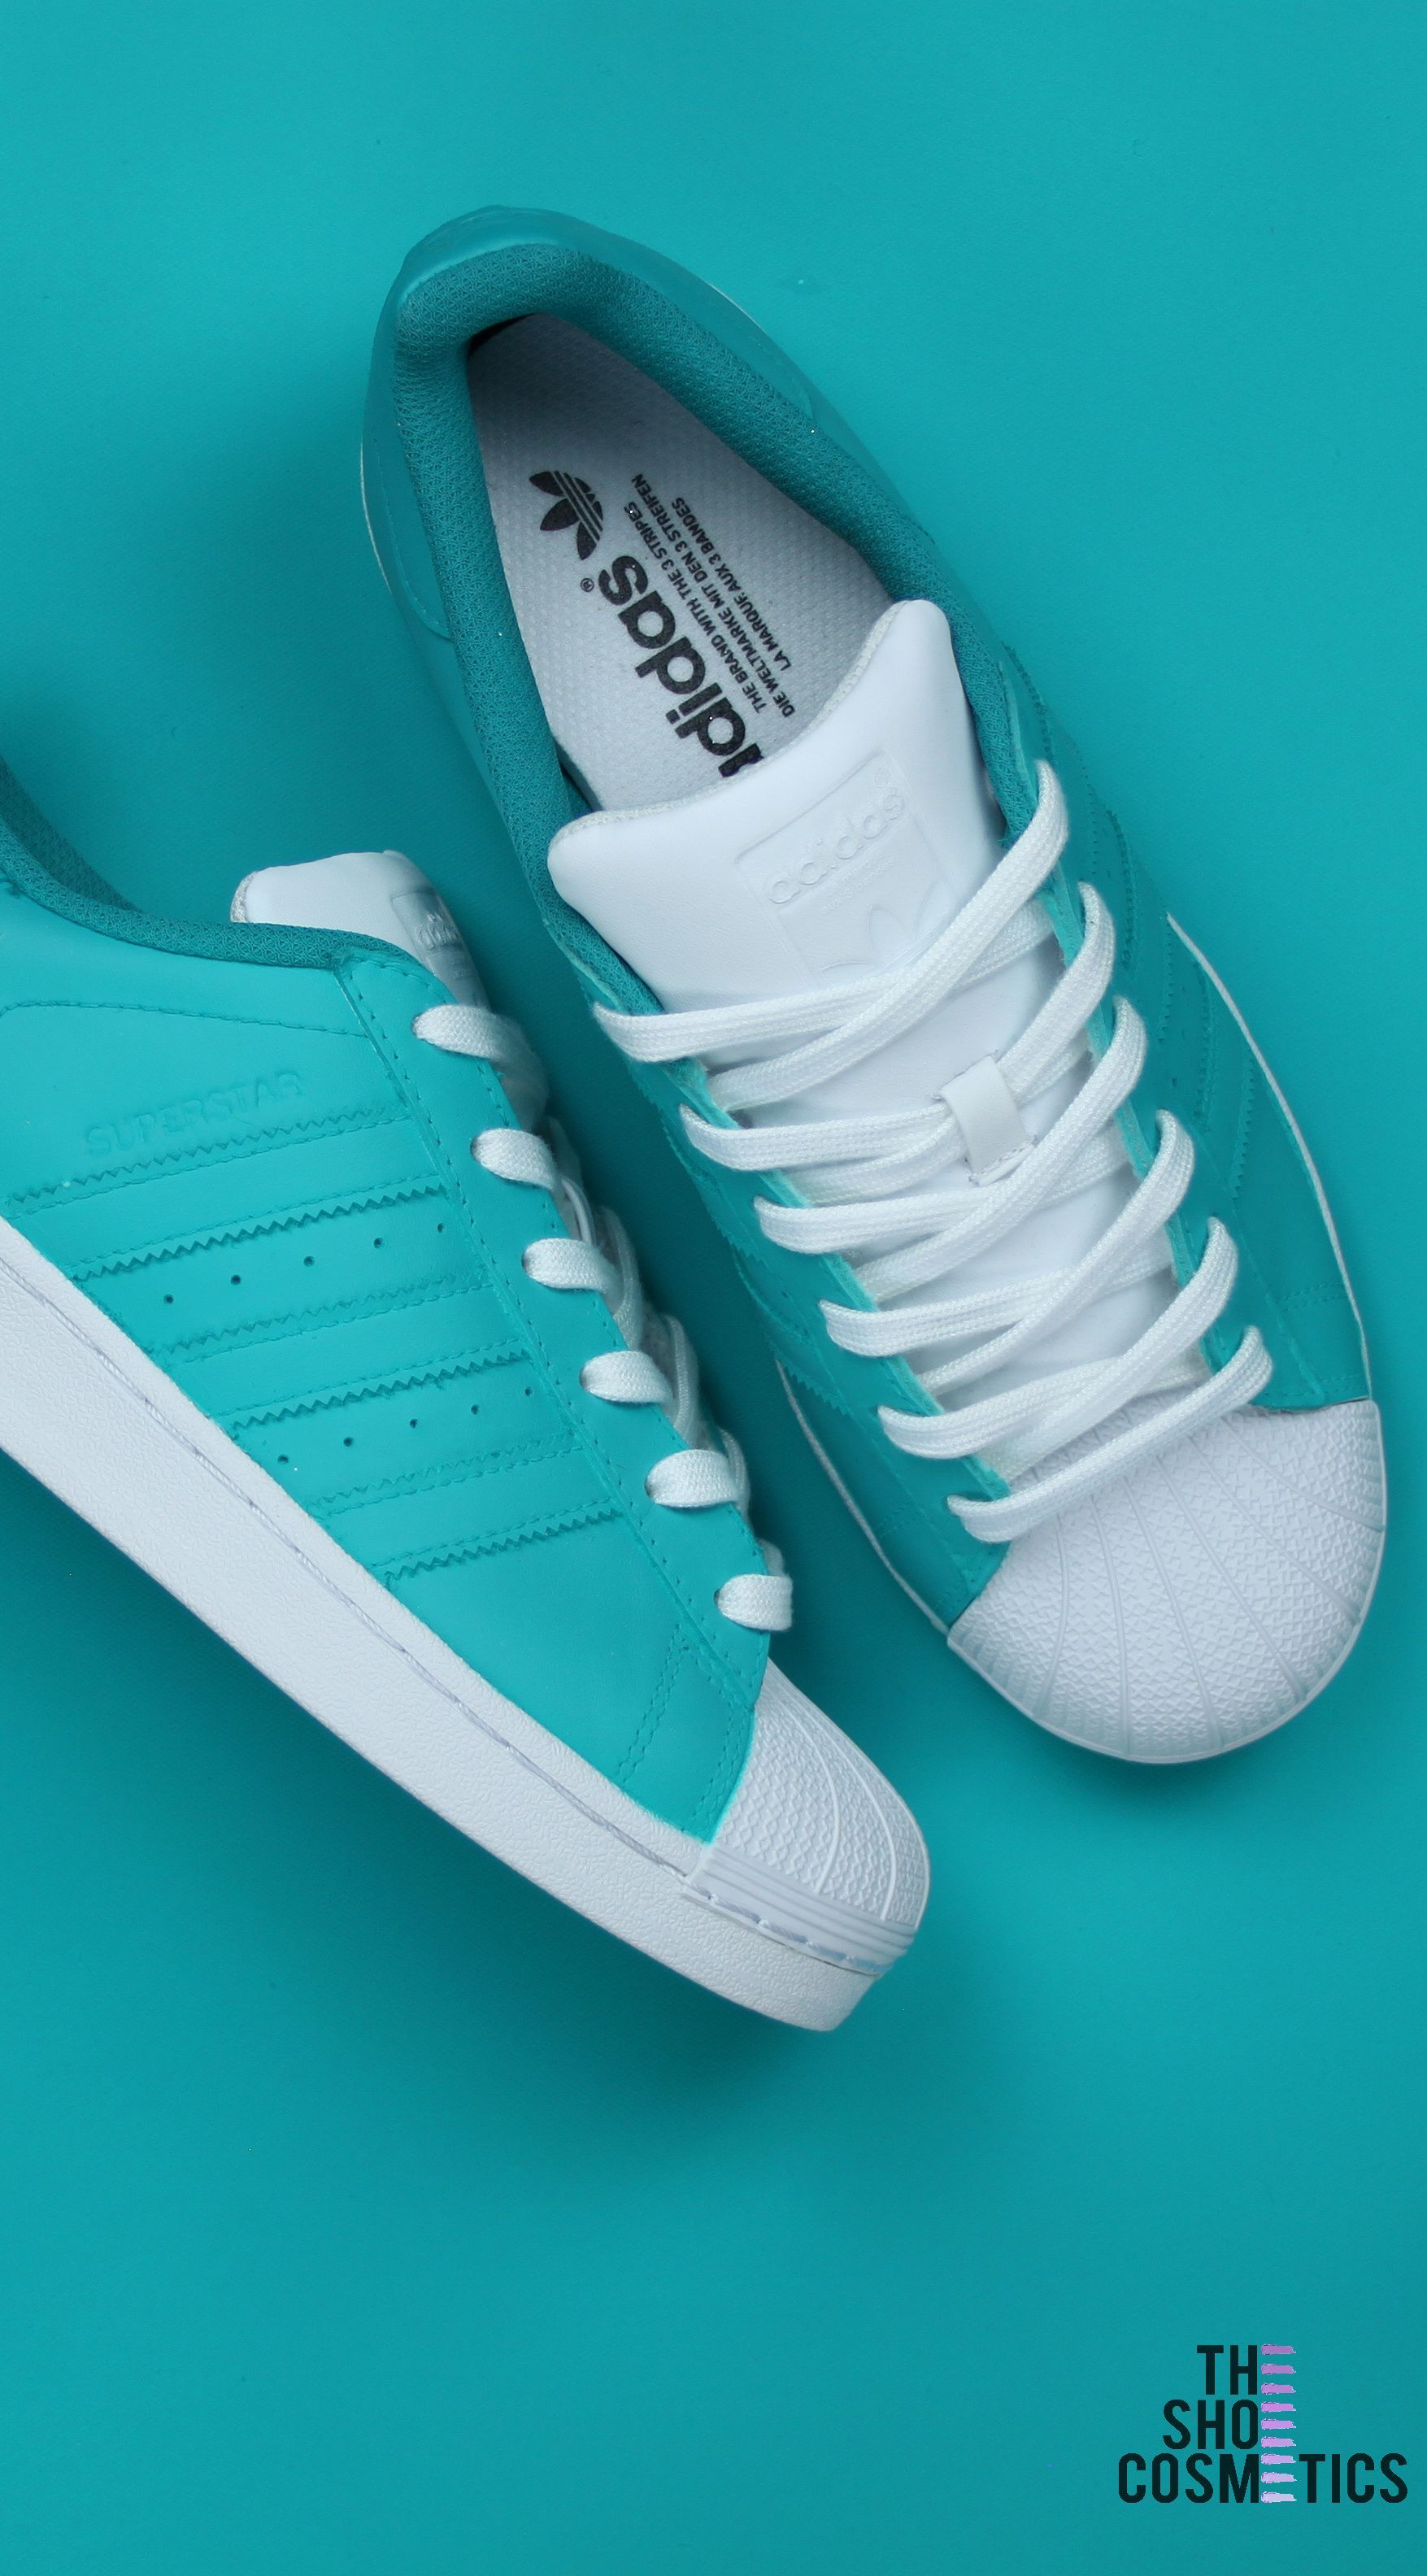 new concept c5888 0c65a Explore our exclusive Adidas Superstars custom hand painted shoes. Looking  for Adidas women s shoes or